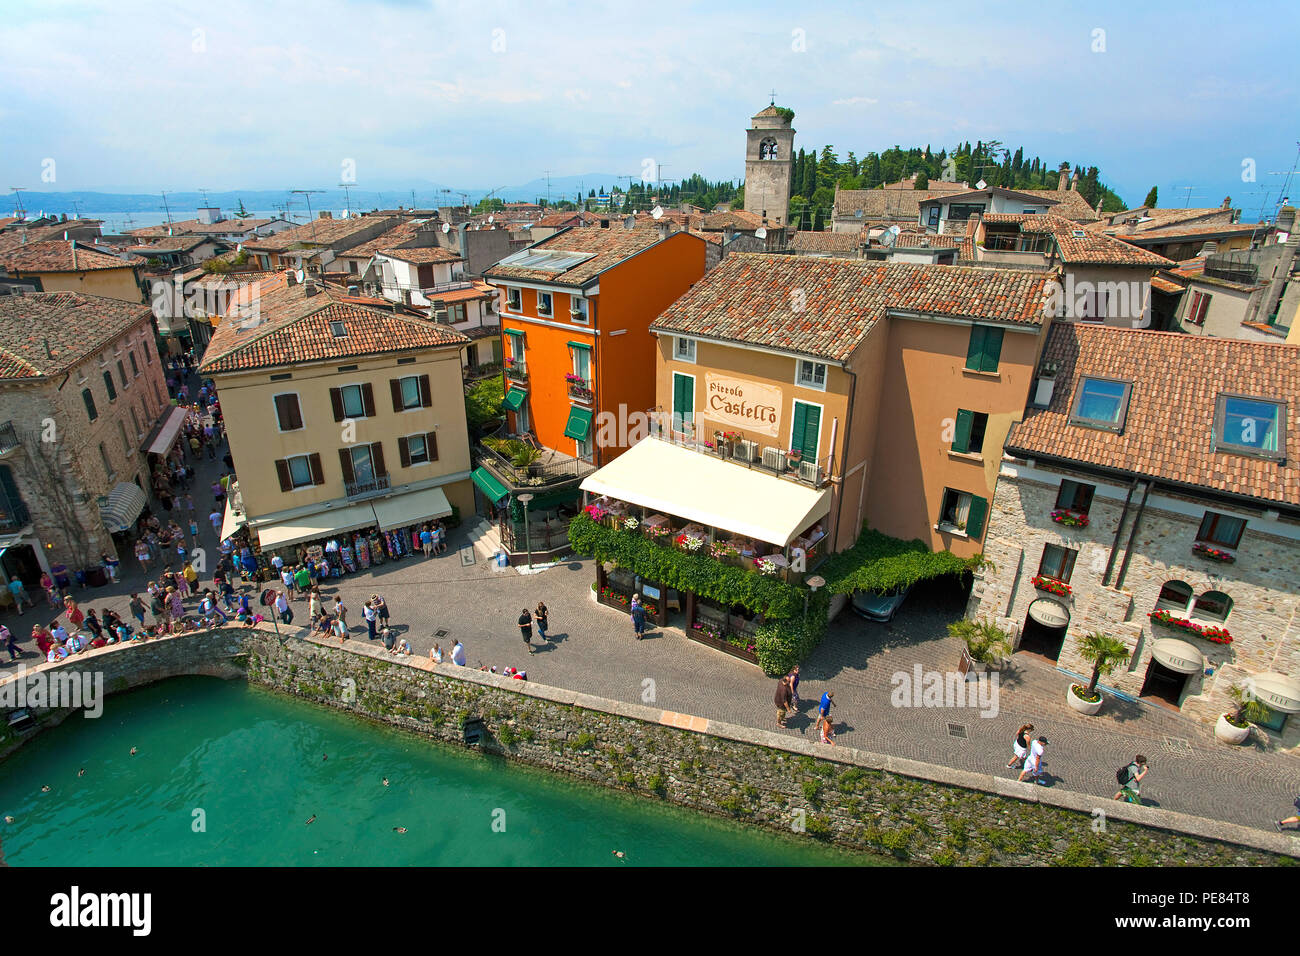 View from Scaliger castle on the old town of Sirmione, Lake Garda, Lombardy, Italy - Stock Image